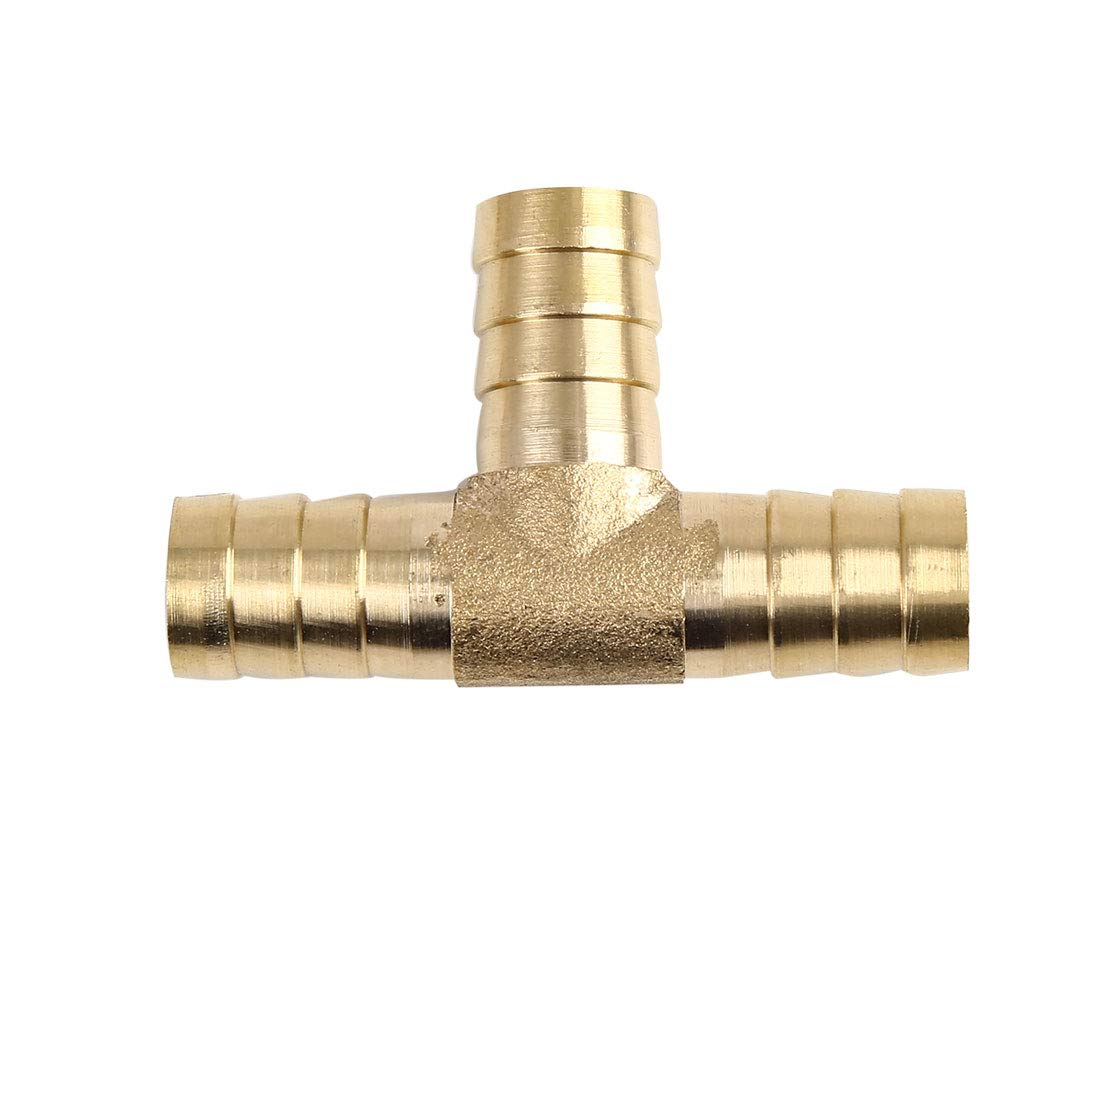 X AUTOHAUX 16mm Hose Barb Brass 3 Way Tee Connector Adaptor for Air Water Gas Oil Pipe 5pcs